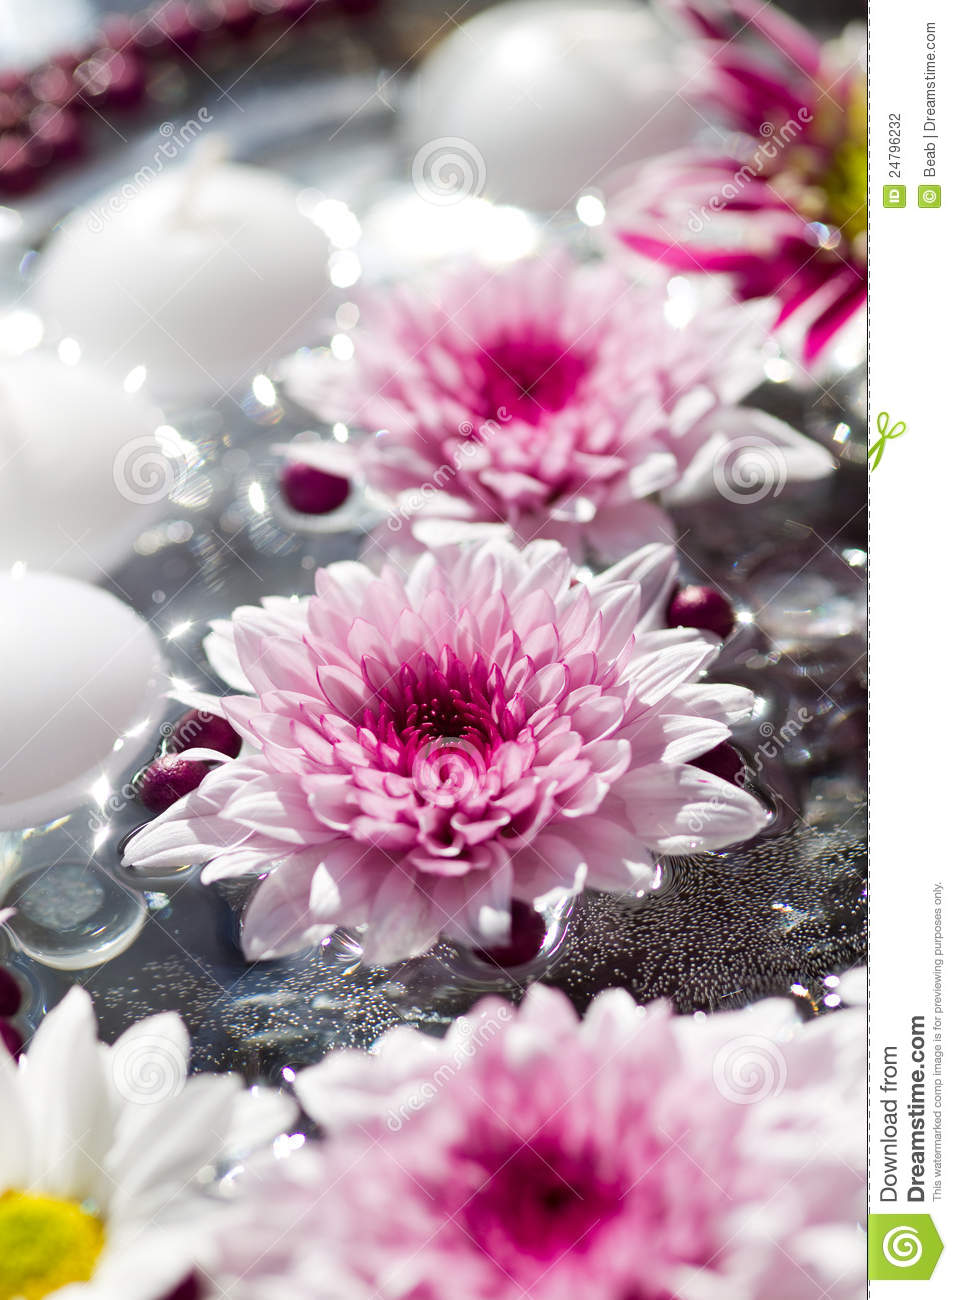 Macro Shot Of Flower Table Decorations Stock Photography - Image ...